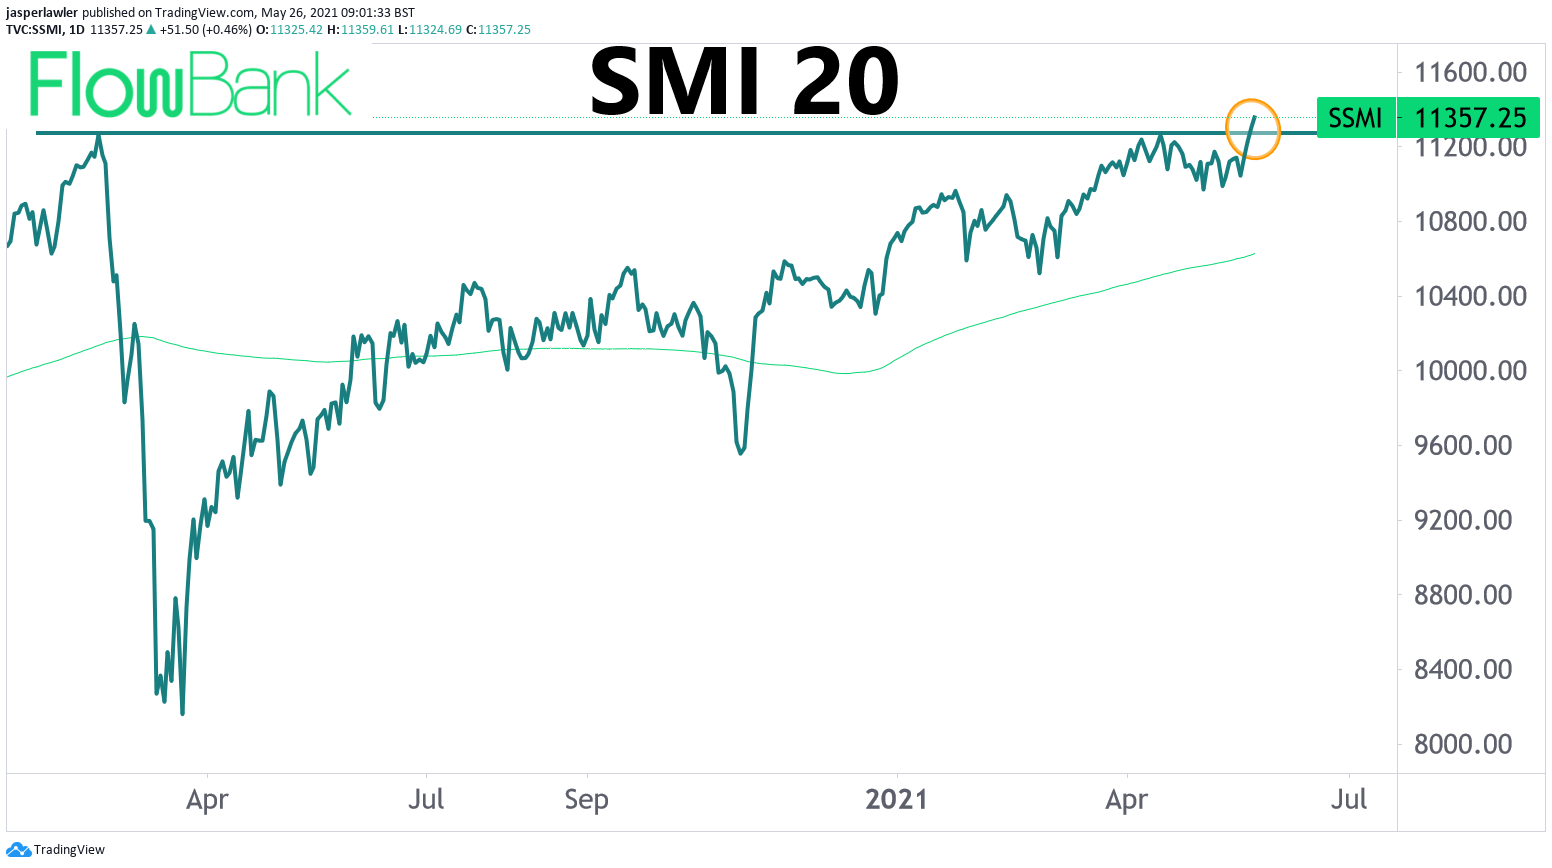 The Swiss Market Index (SMI) has hit a new record high